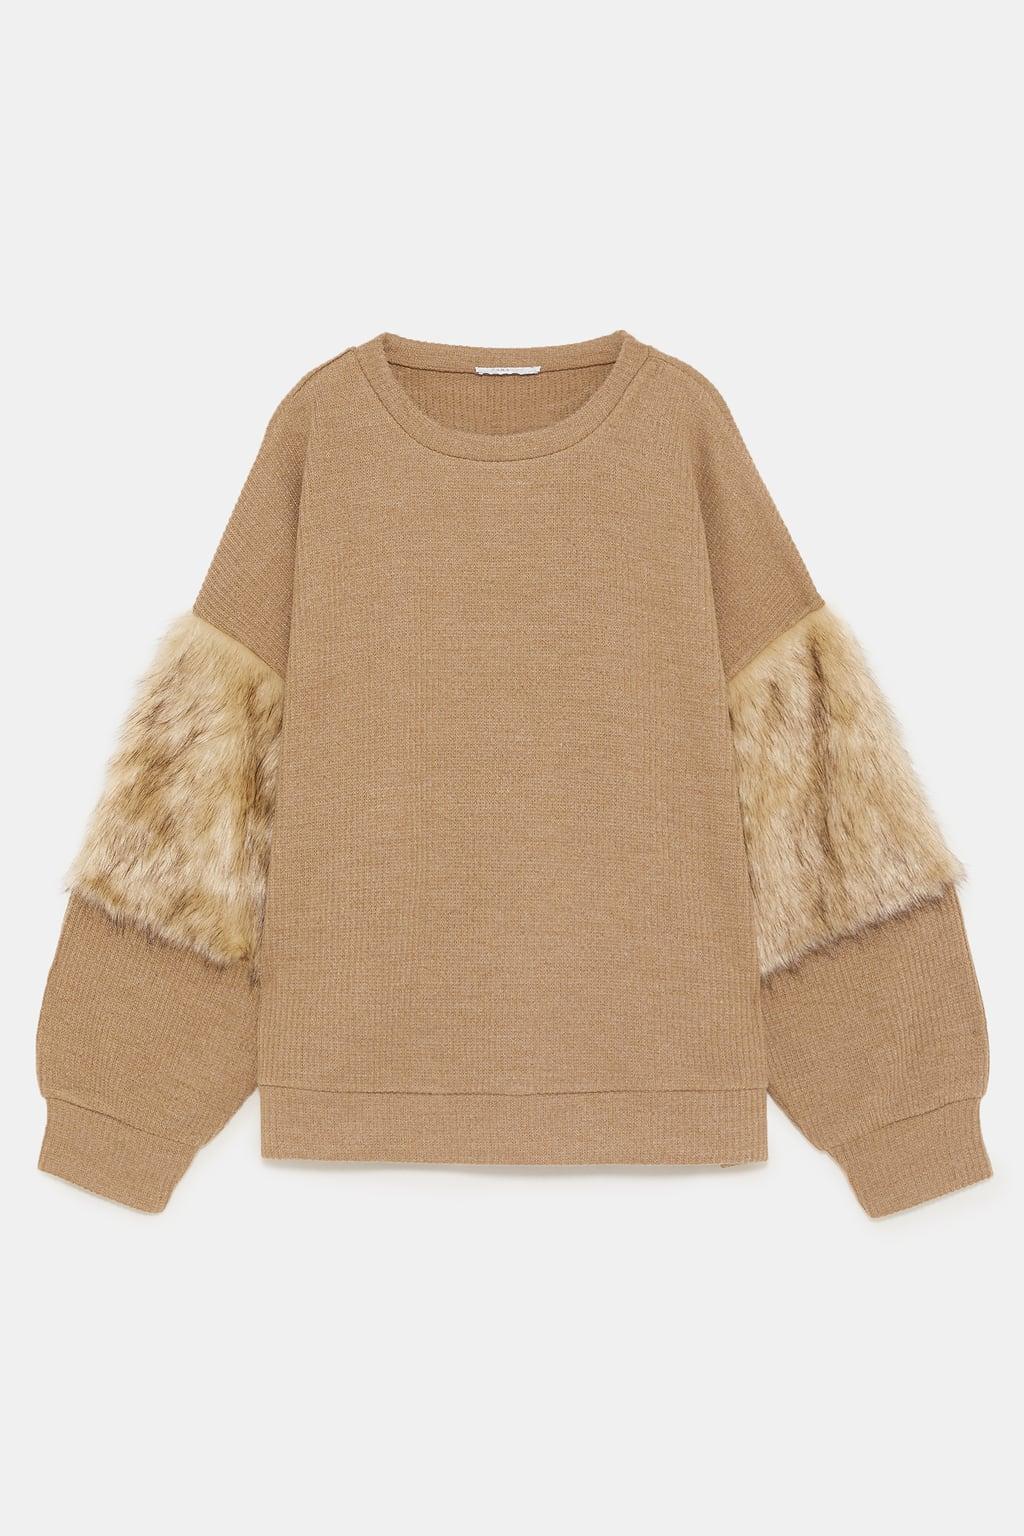 TEXTURED WEAVE SWEATSHIRT WITH MATCHING DETAIL